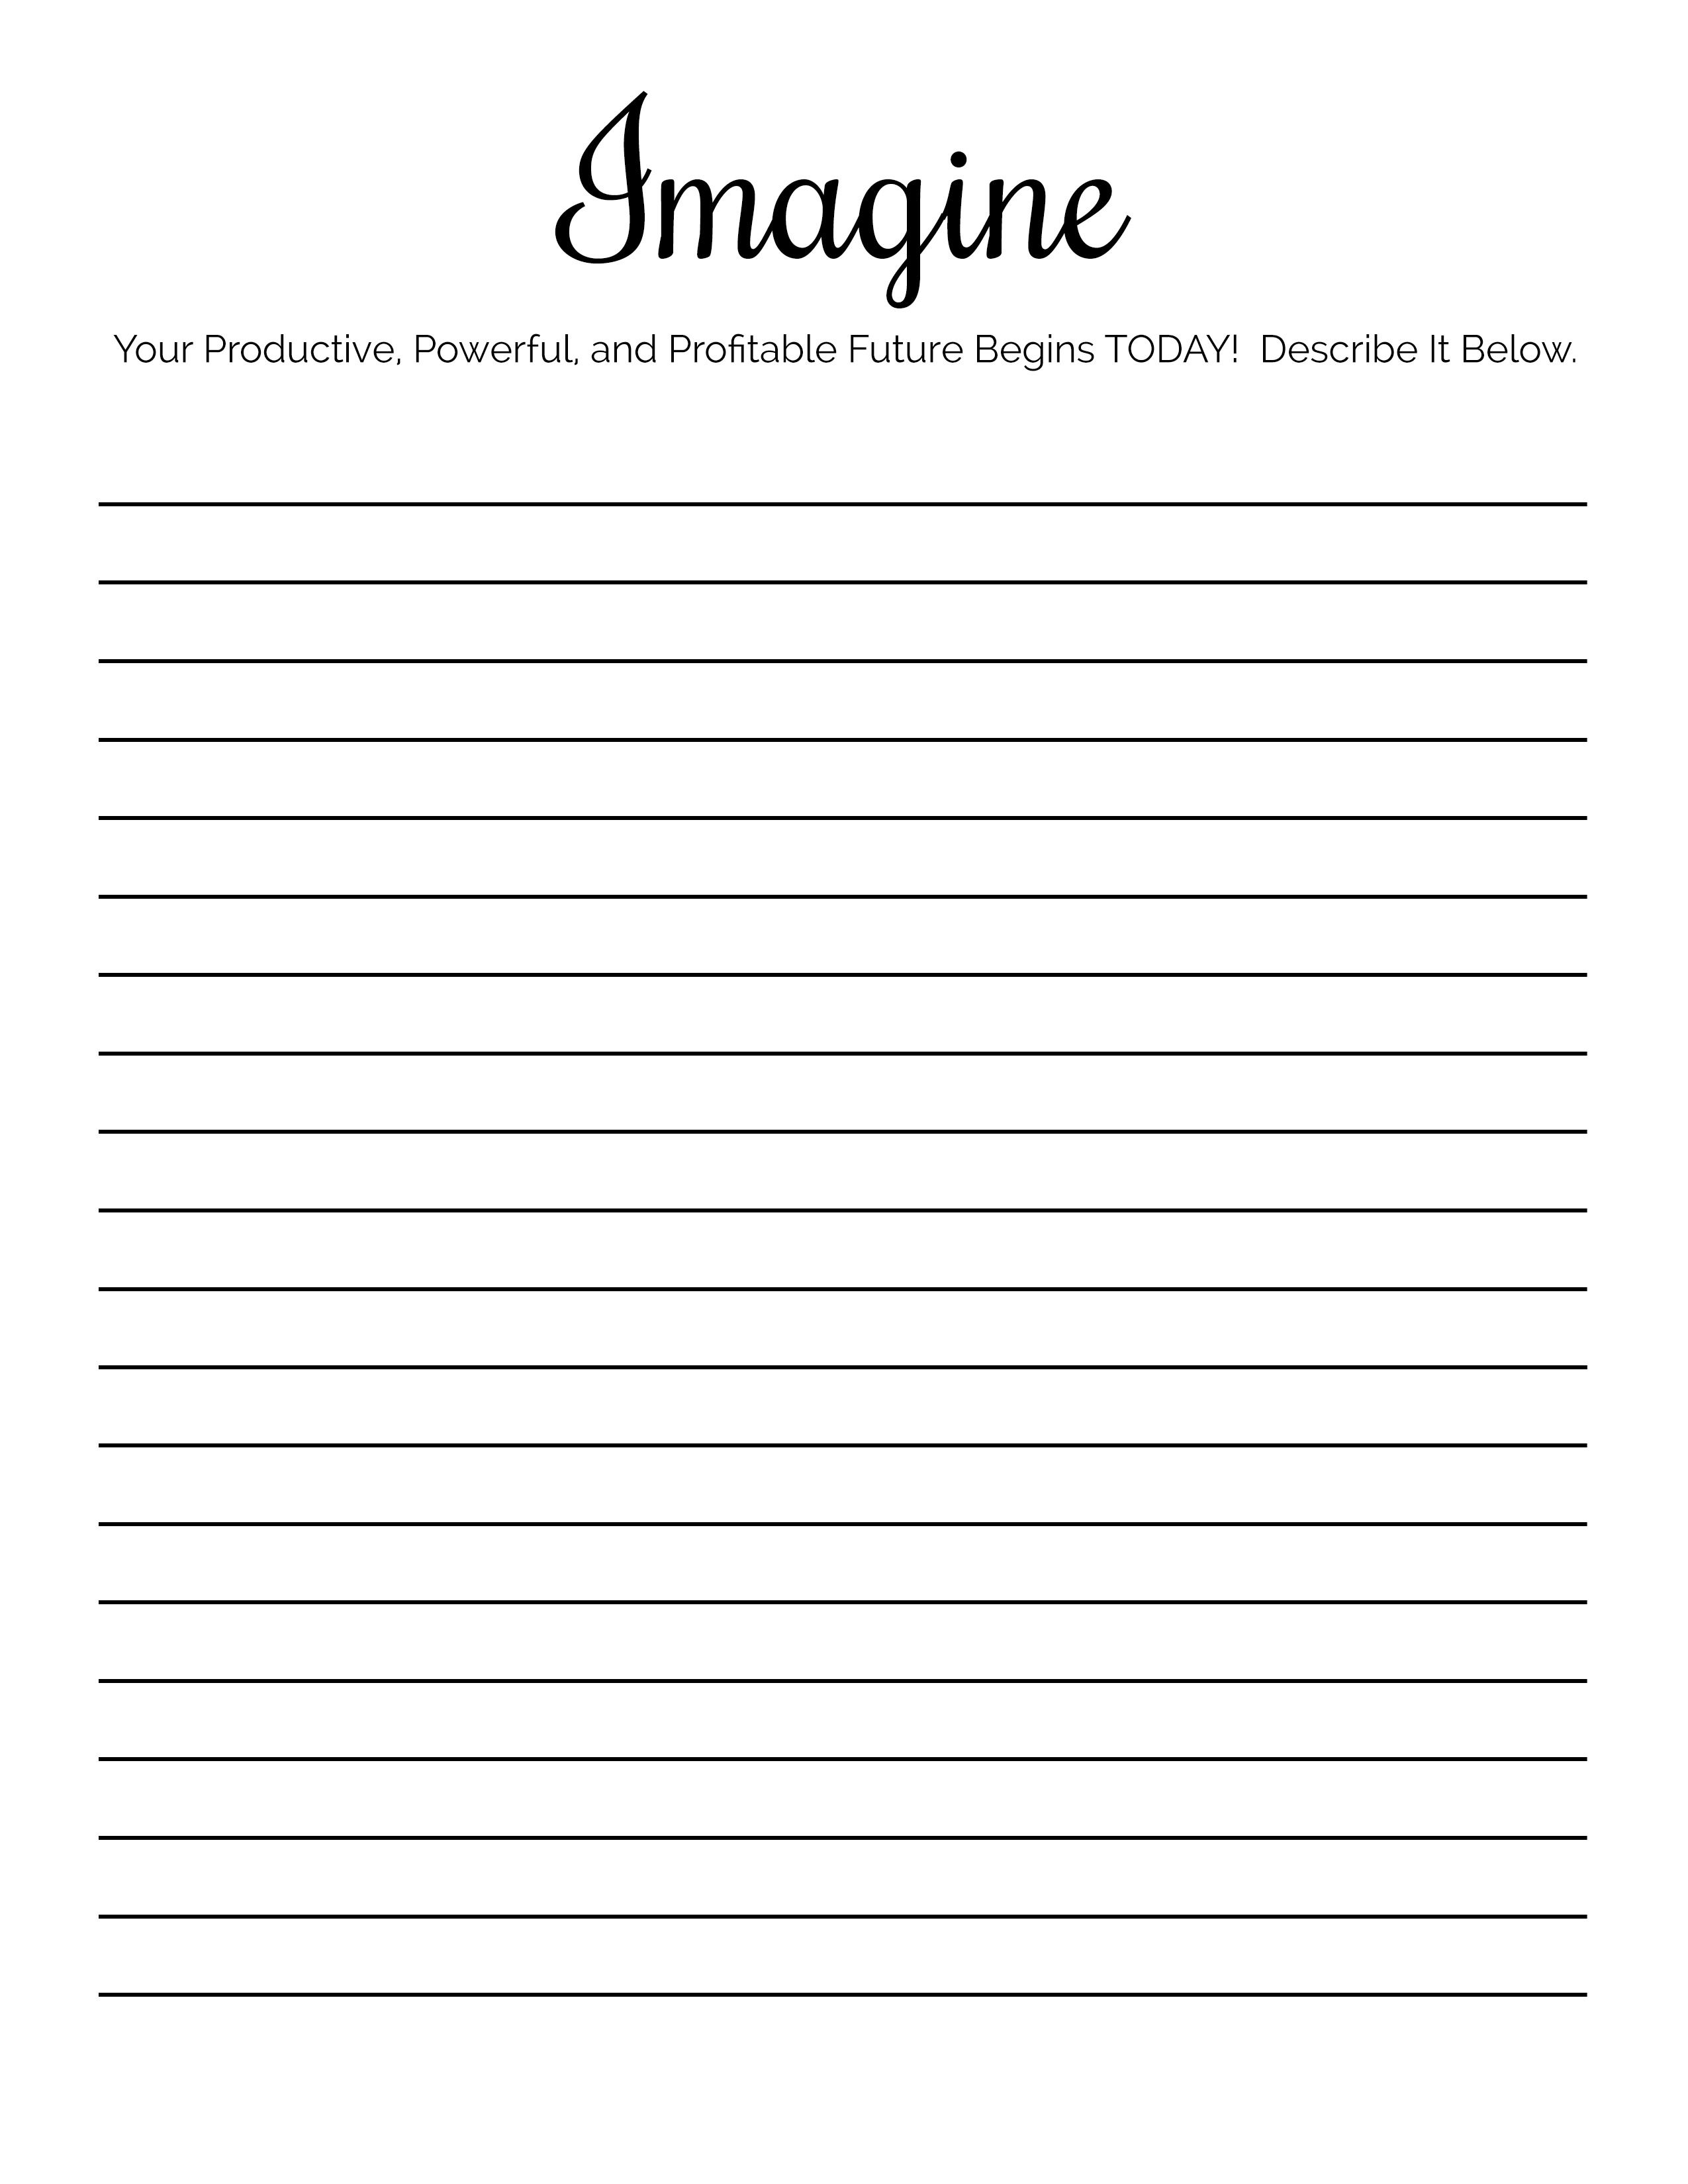 Imagine Worksheet Preview